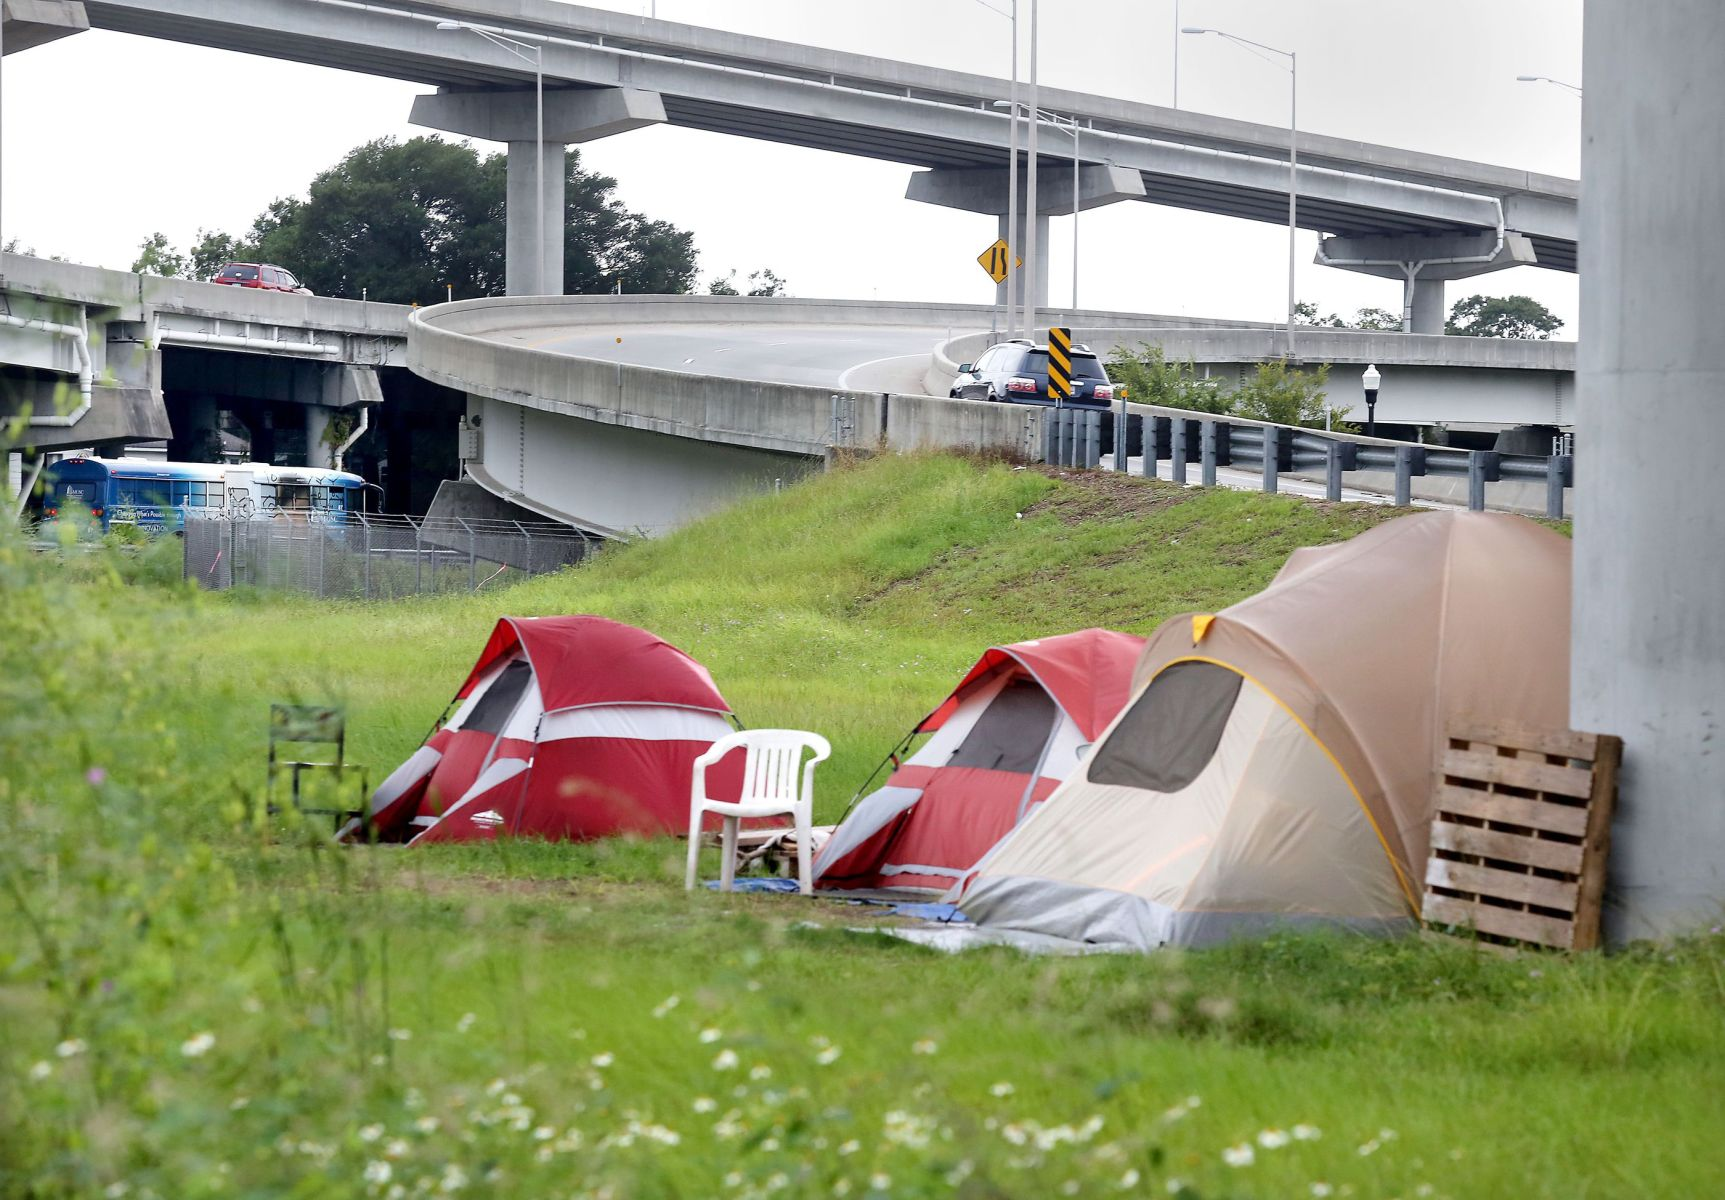 Tent town hurts homeless city & Tent town hurts homeless city | Opinion | postandcourier.com